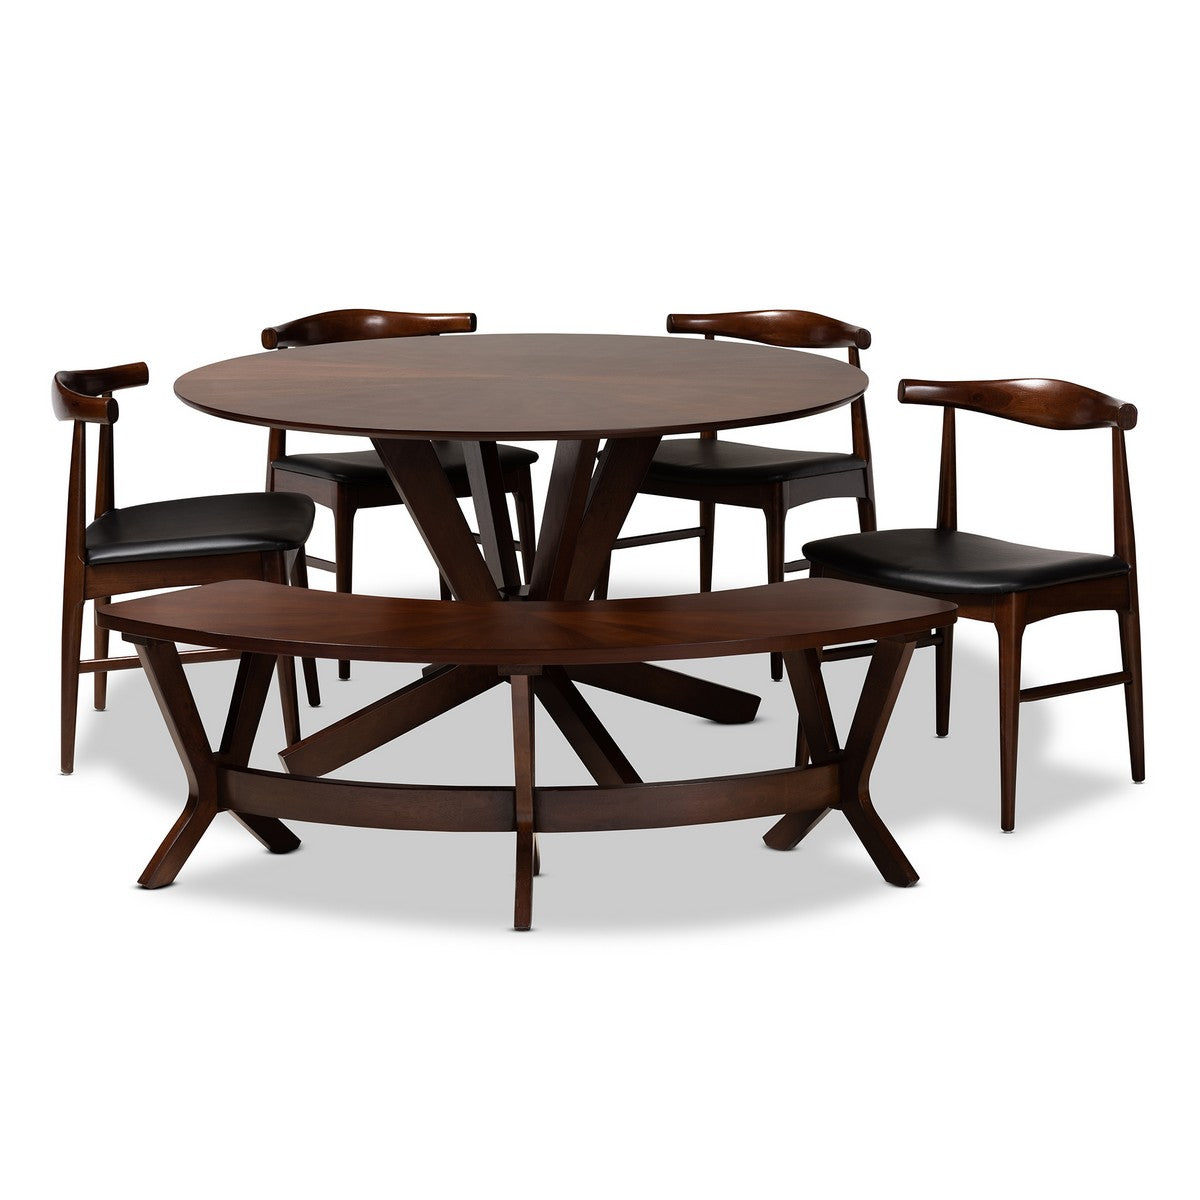 Baxton Studio Berlin Mid-Century Modern Black Faux Leather Upholstered Walnut Finished 6-Piece Wood Dining Set Baxton Studio-Dining Sets-Minimal And Modern - 1